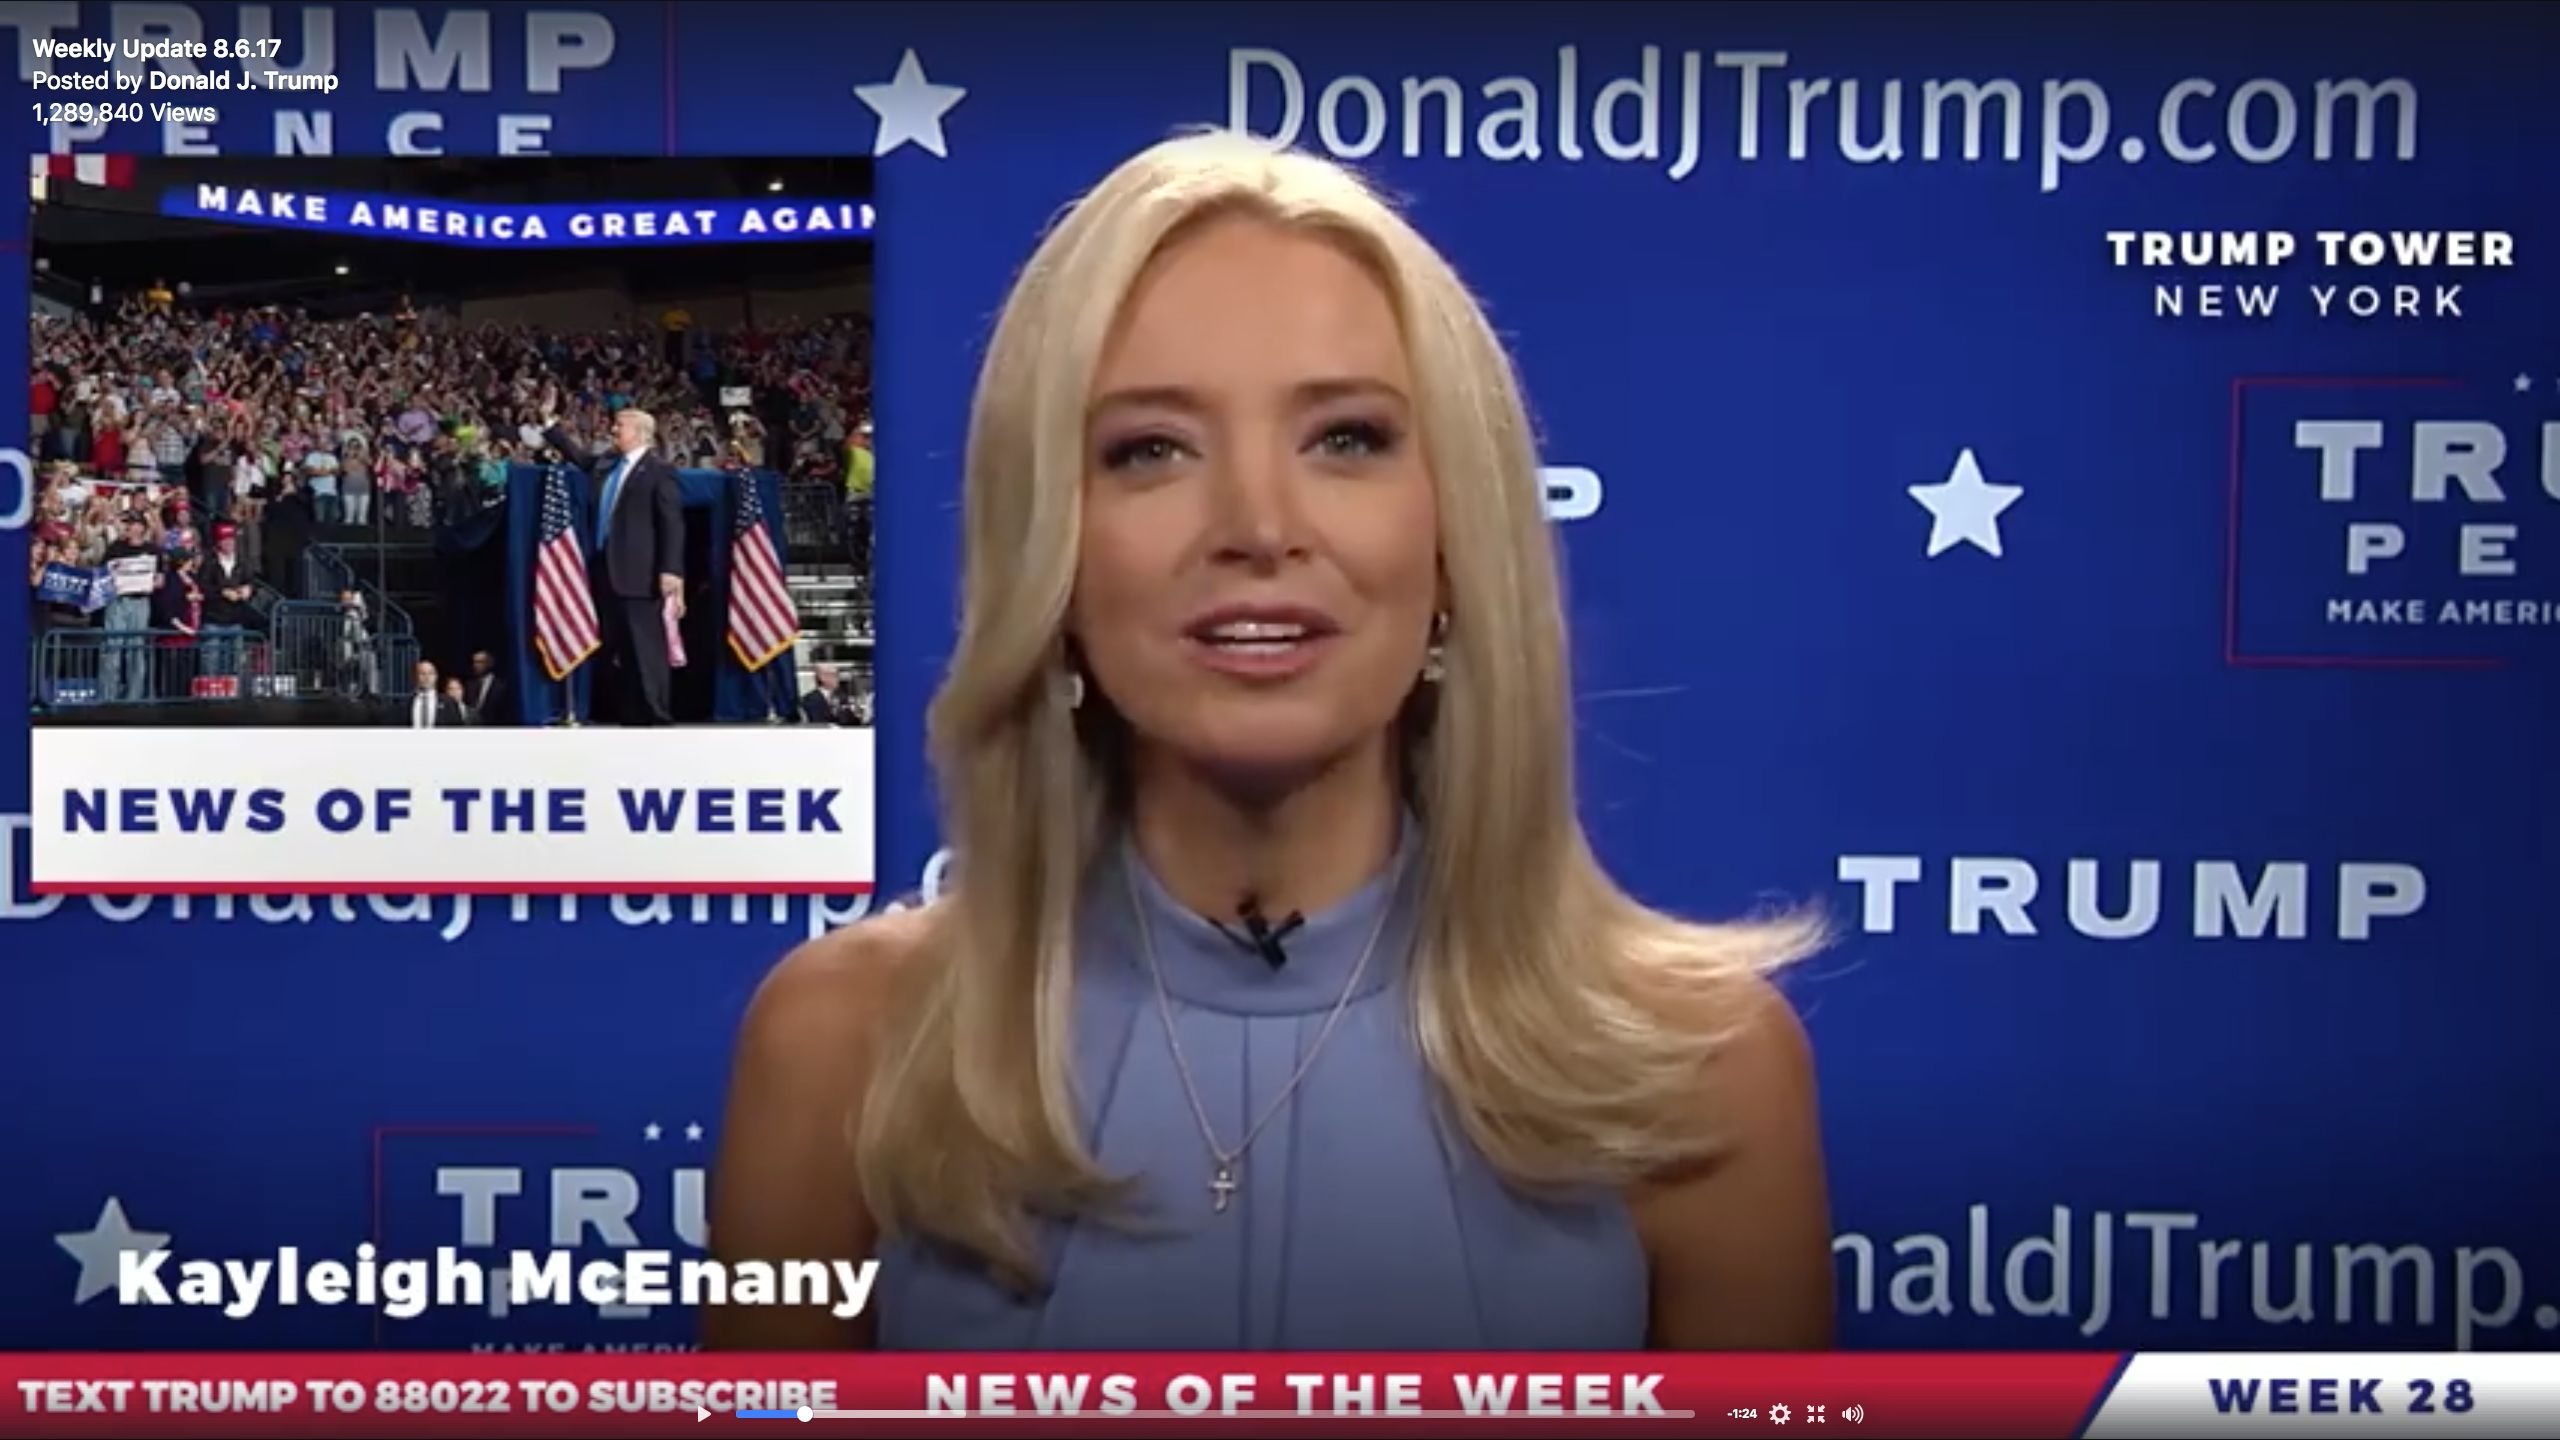 Trump Launches Real News Service To Fight Negative Media Coverage Slipping Support Kayleigh Mcenany Trump Supporters Trump